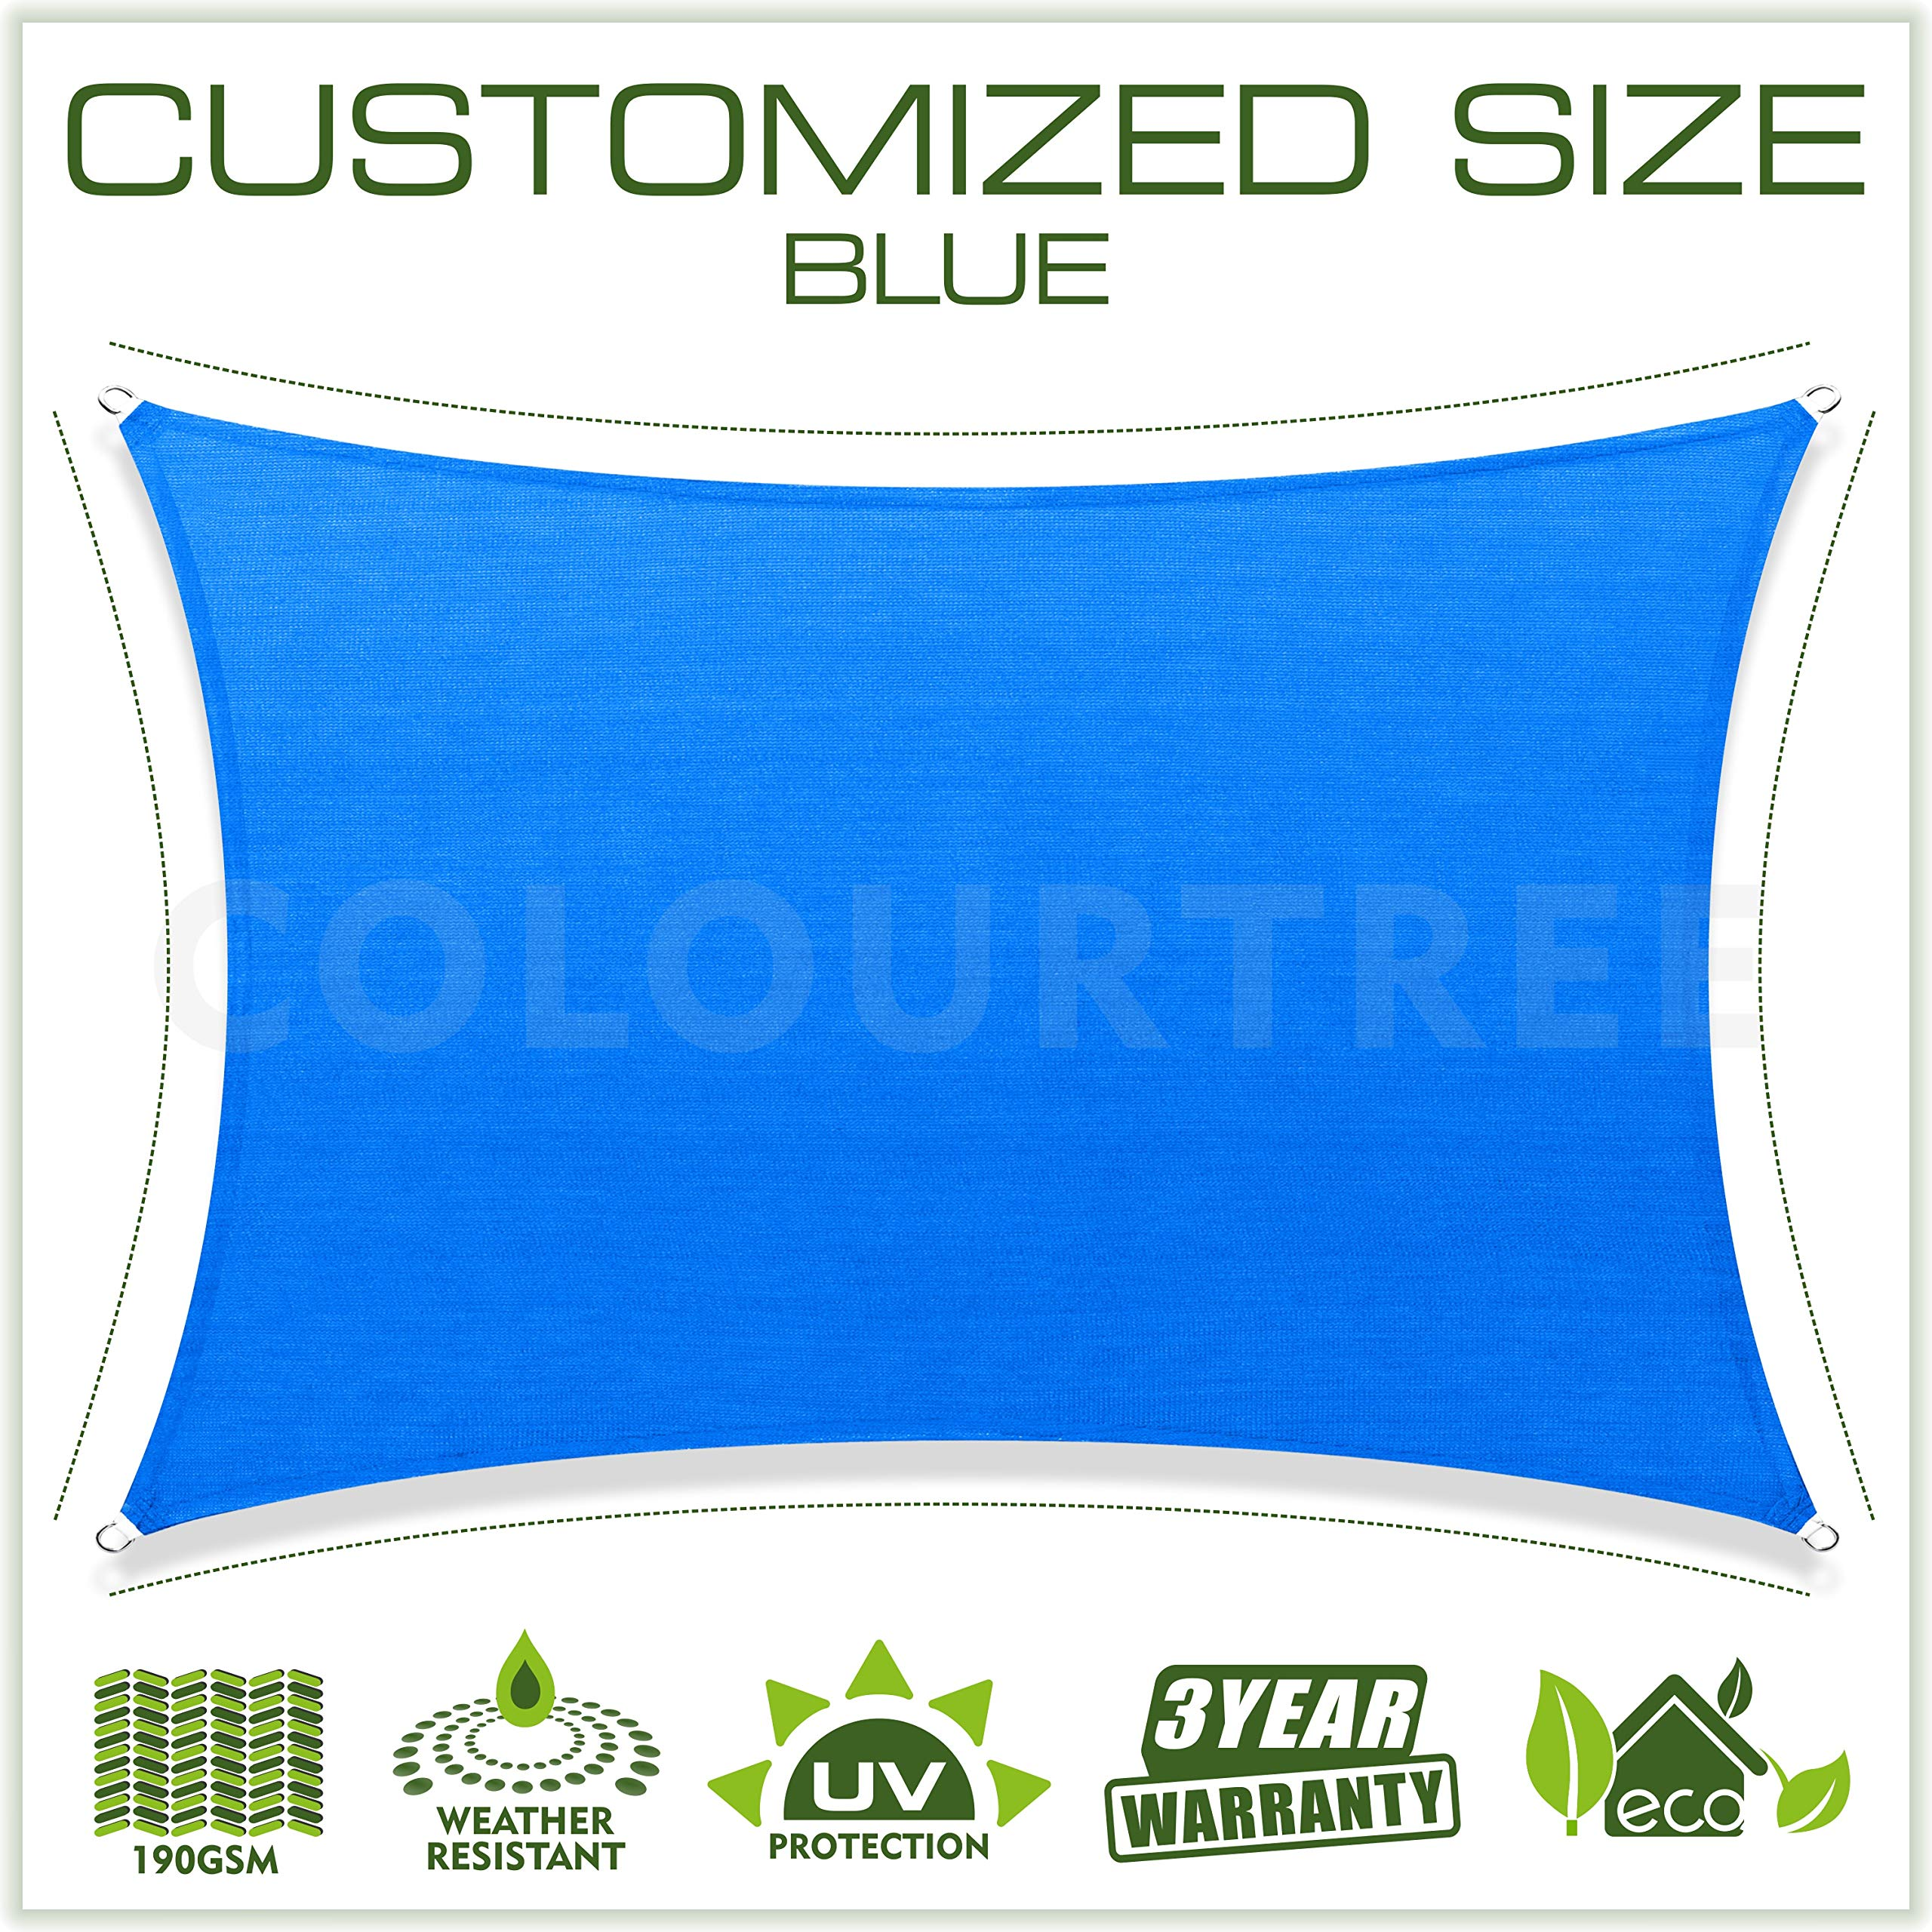 ColourTree Customized Size 15' x 20' Blue Sun Shade Sail Canopy UV Block Rectangle - Commercial Standard Heavy Duty - 190 GSM - 3 Years Warranty